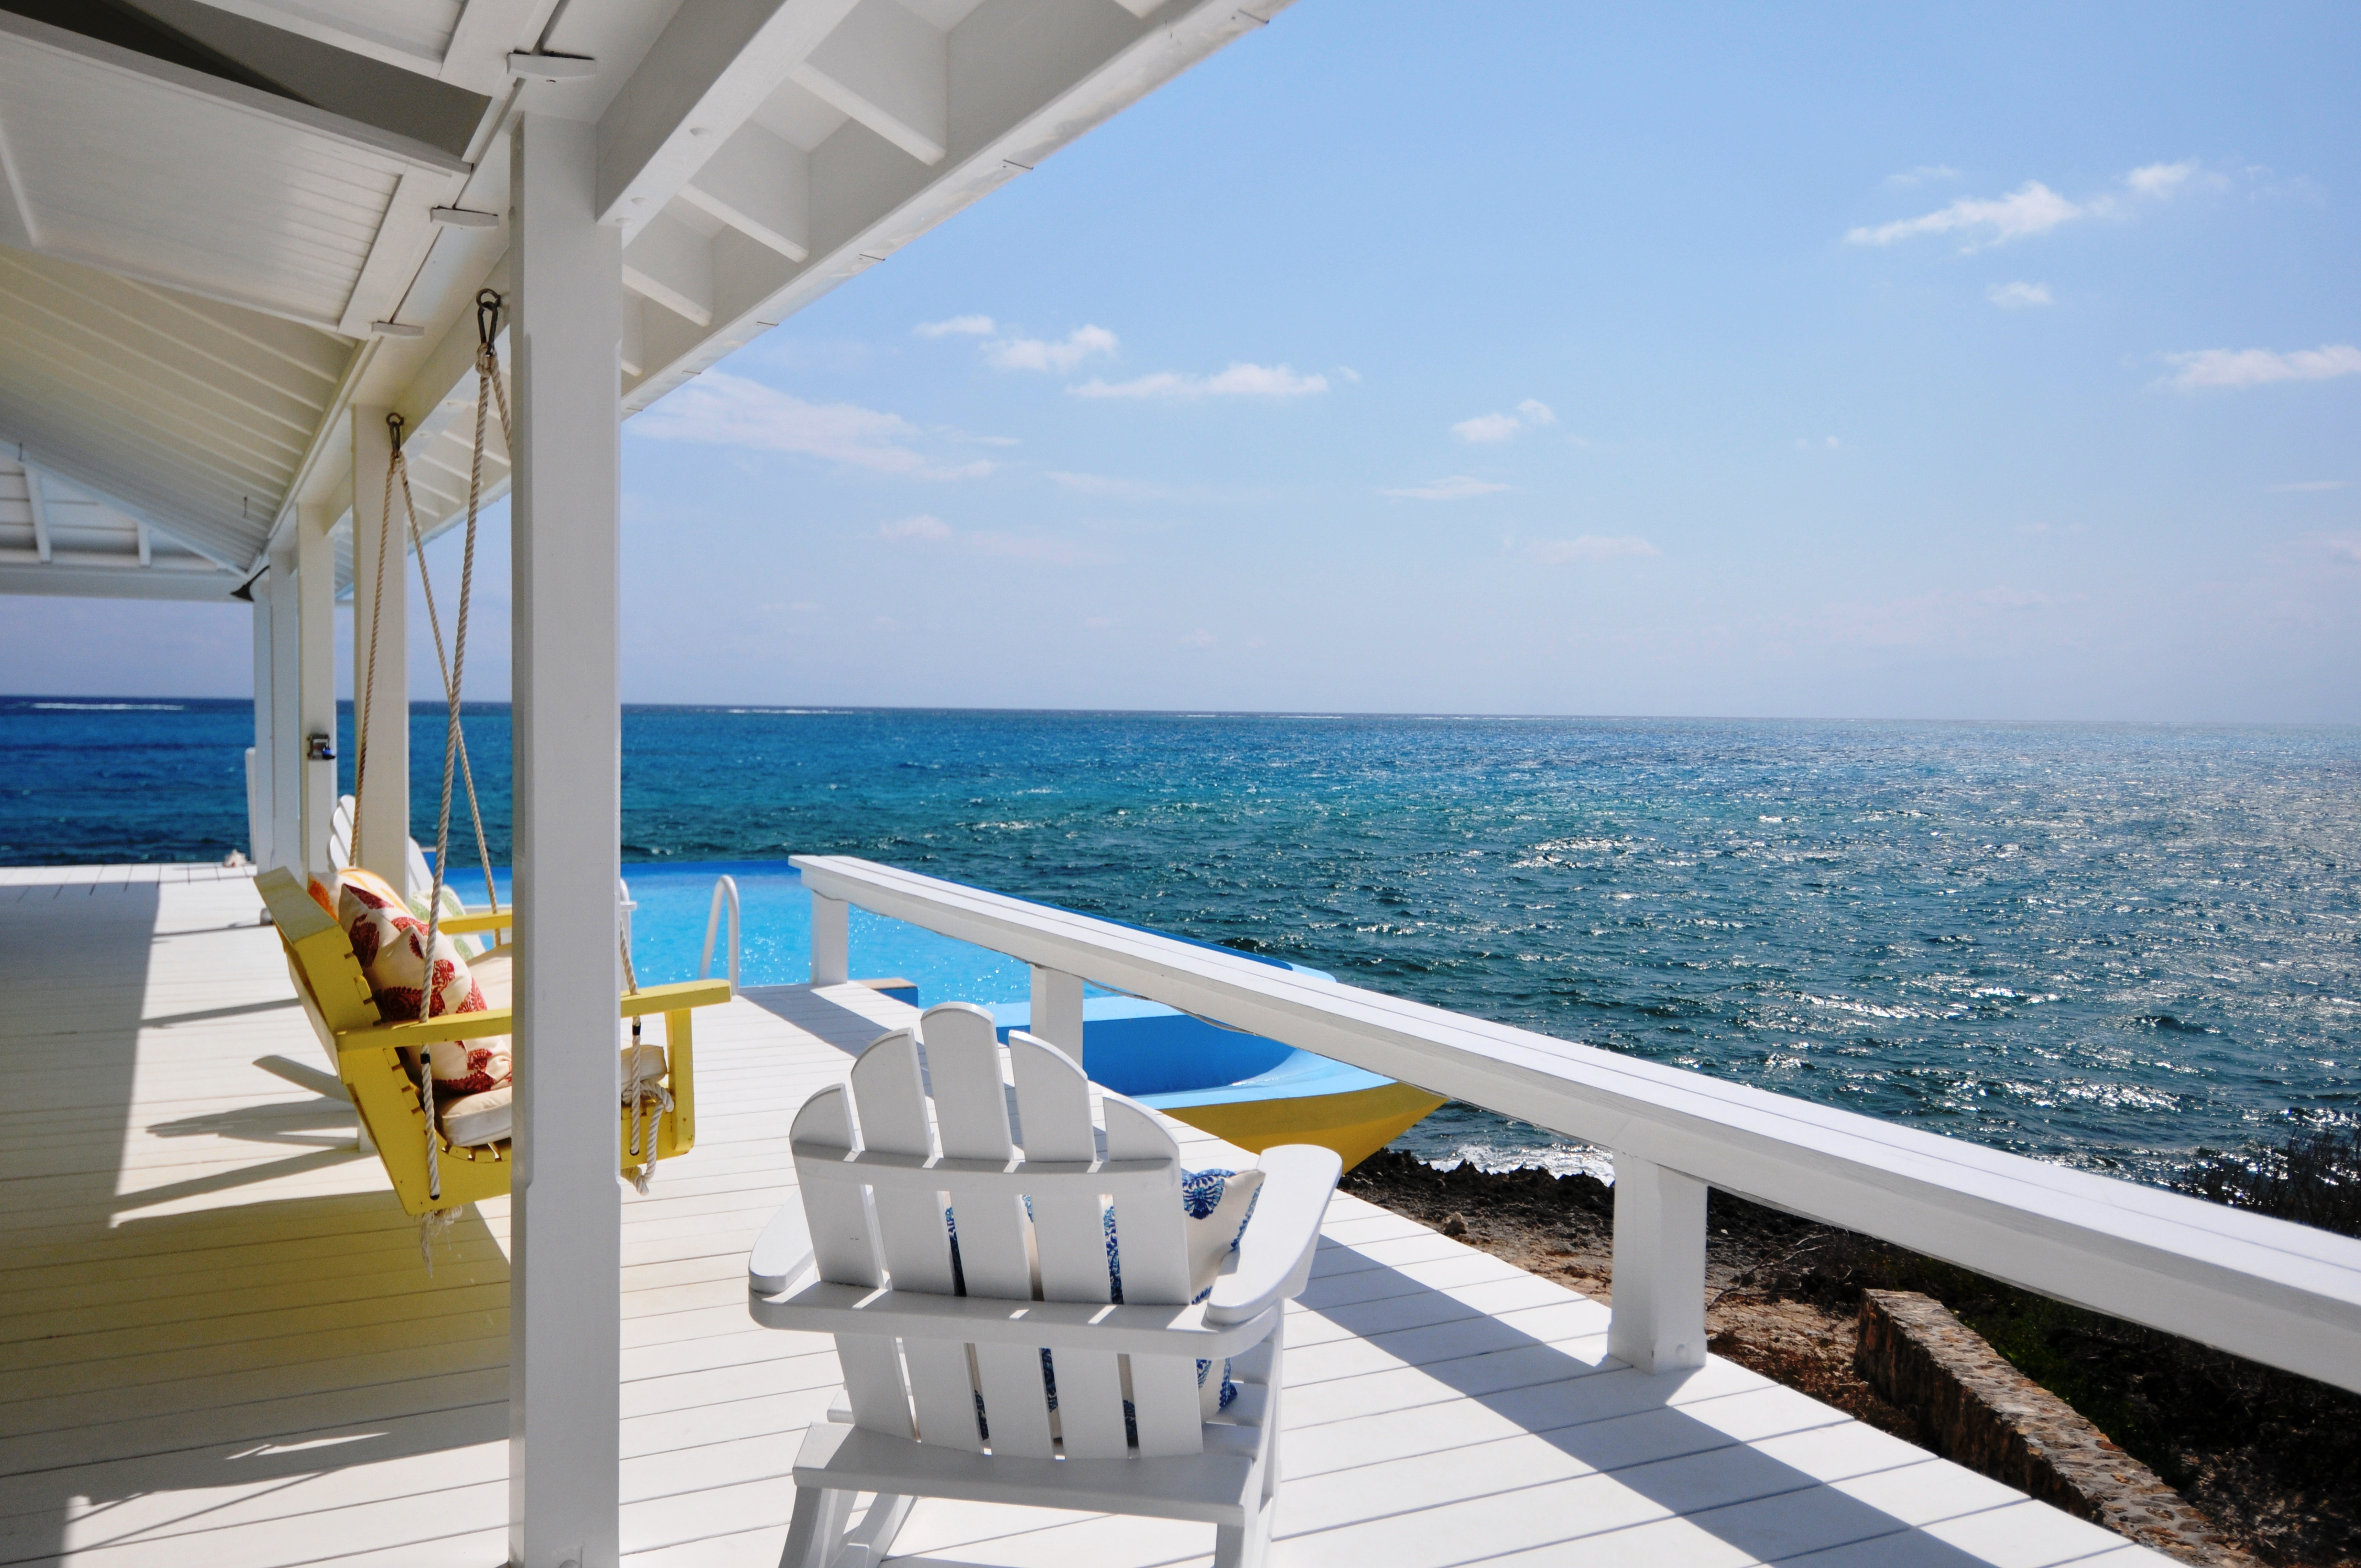 the deck of a boat leaving Man-O-War Cay property on Abaco in the Bahamas